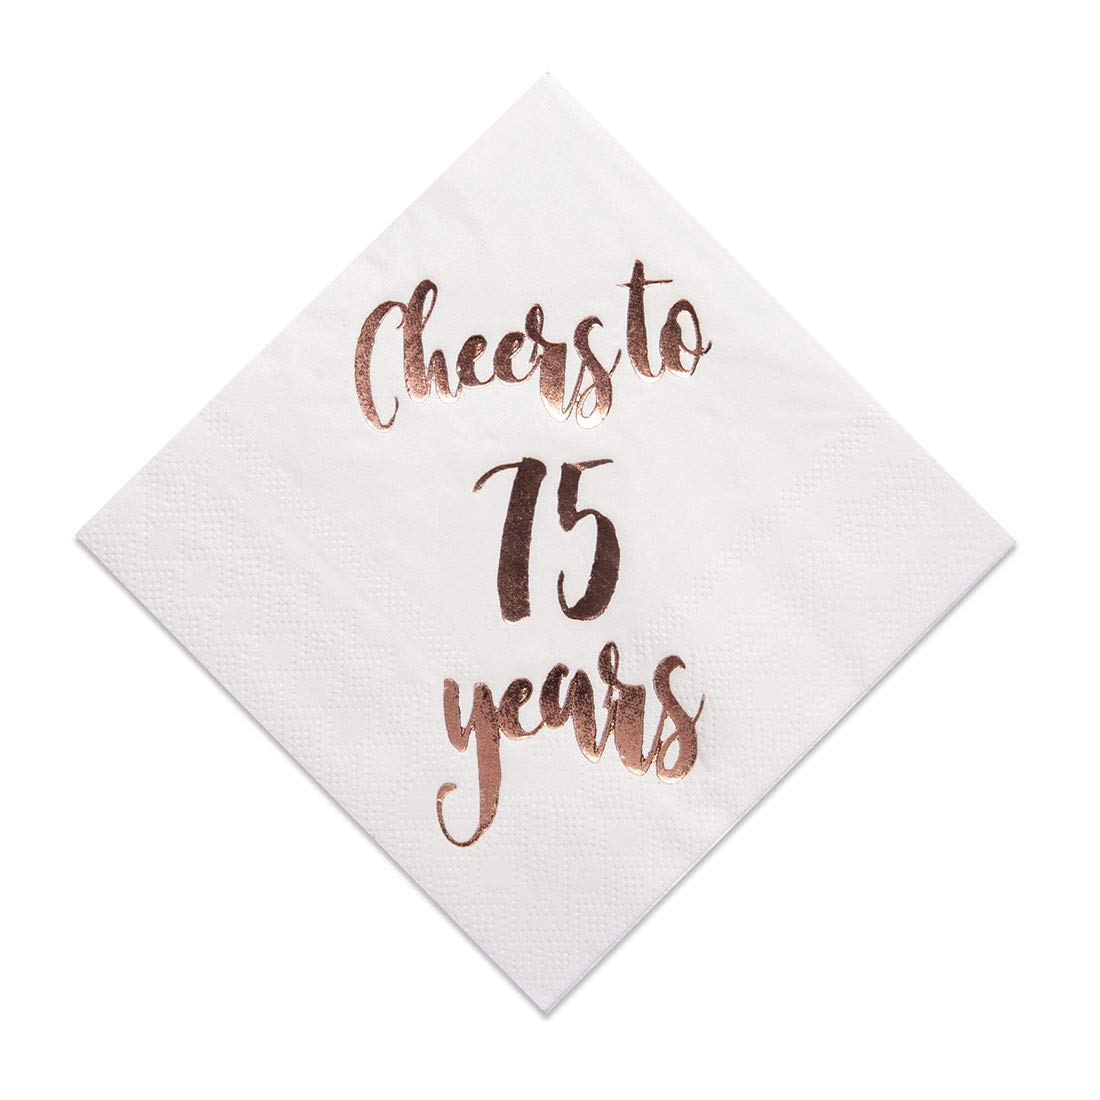 Cheers to 75 Years Cocktail Napkins, 50-Pack 3ply White Rose Gold 75th Birthday Dinner Celebration Party Decoration Napkin